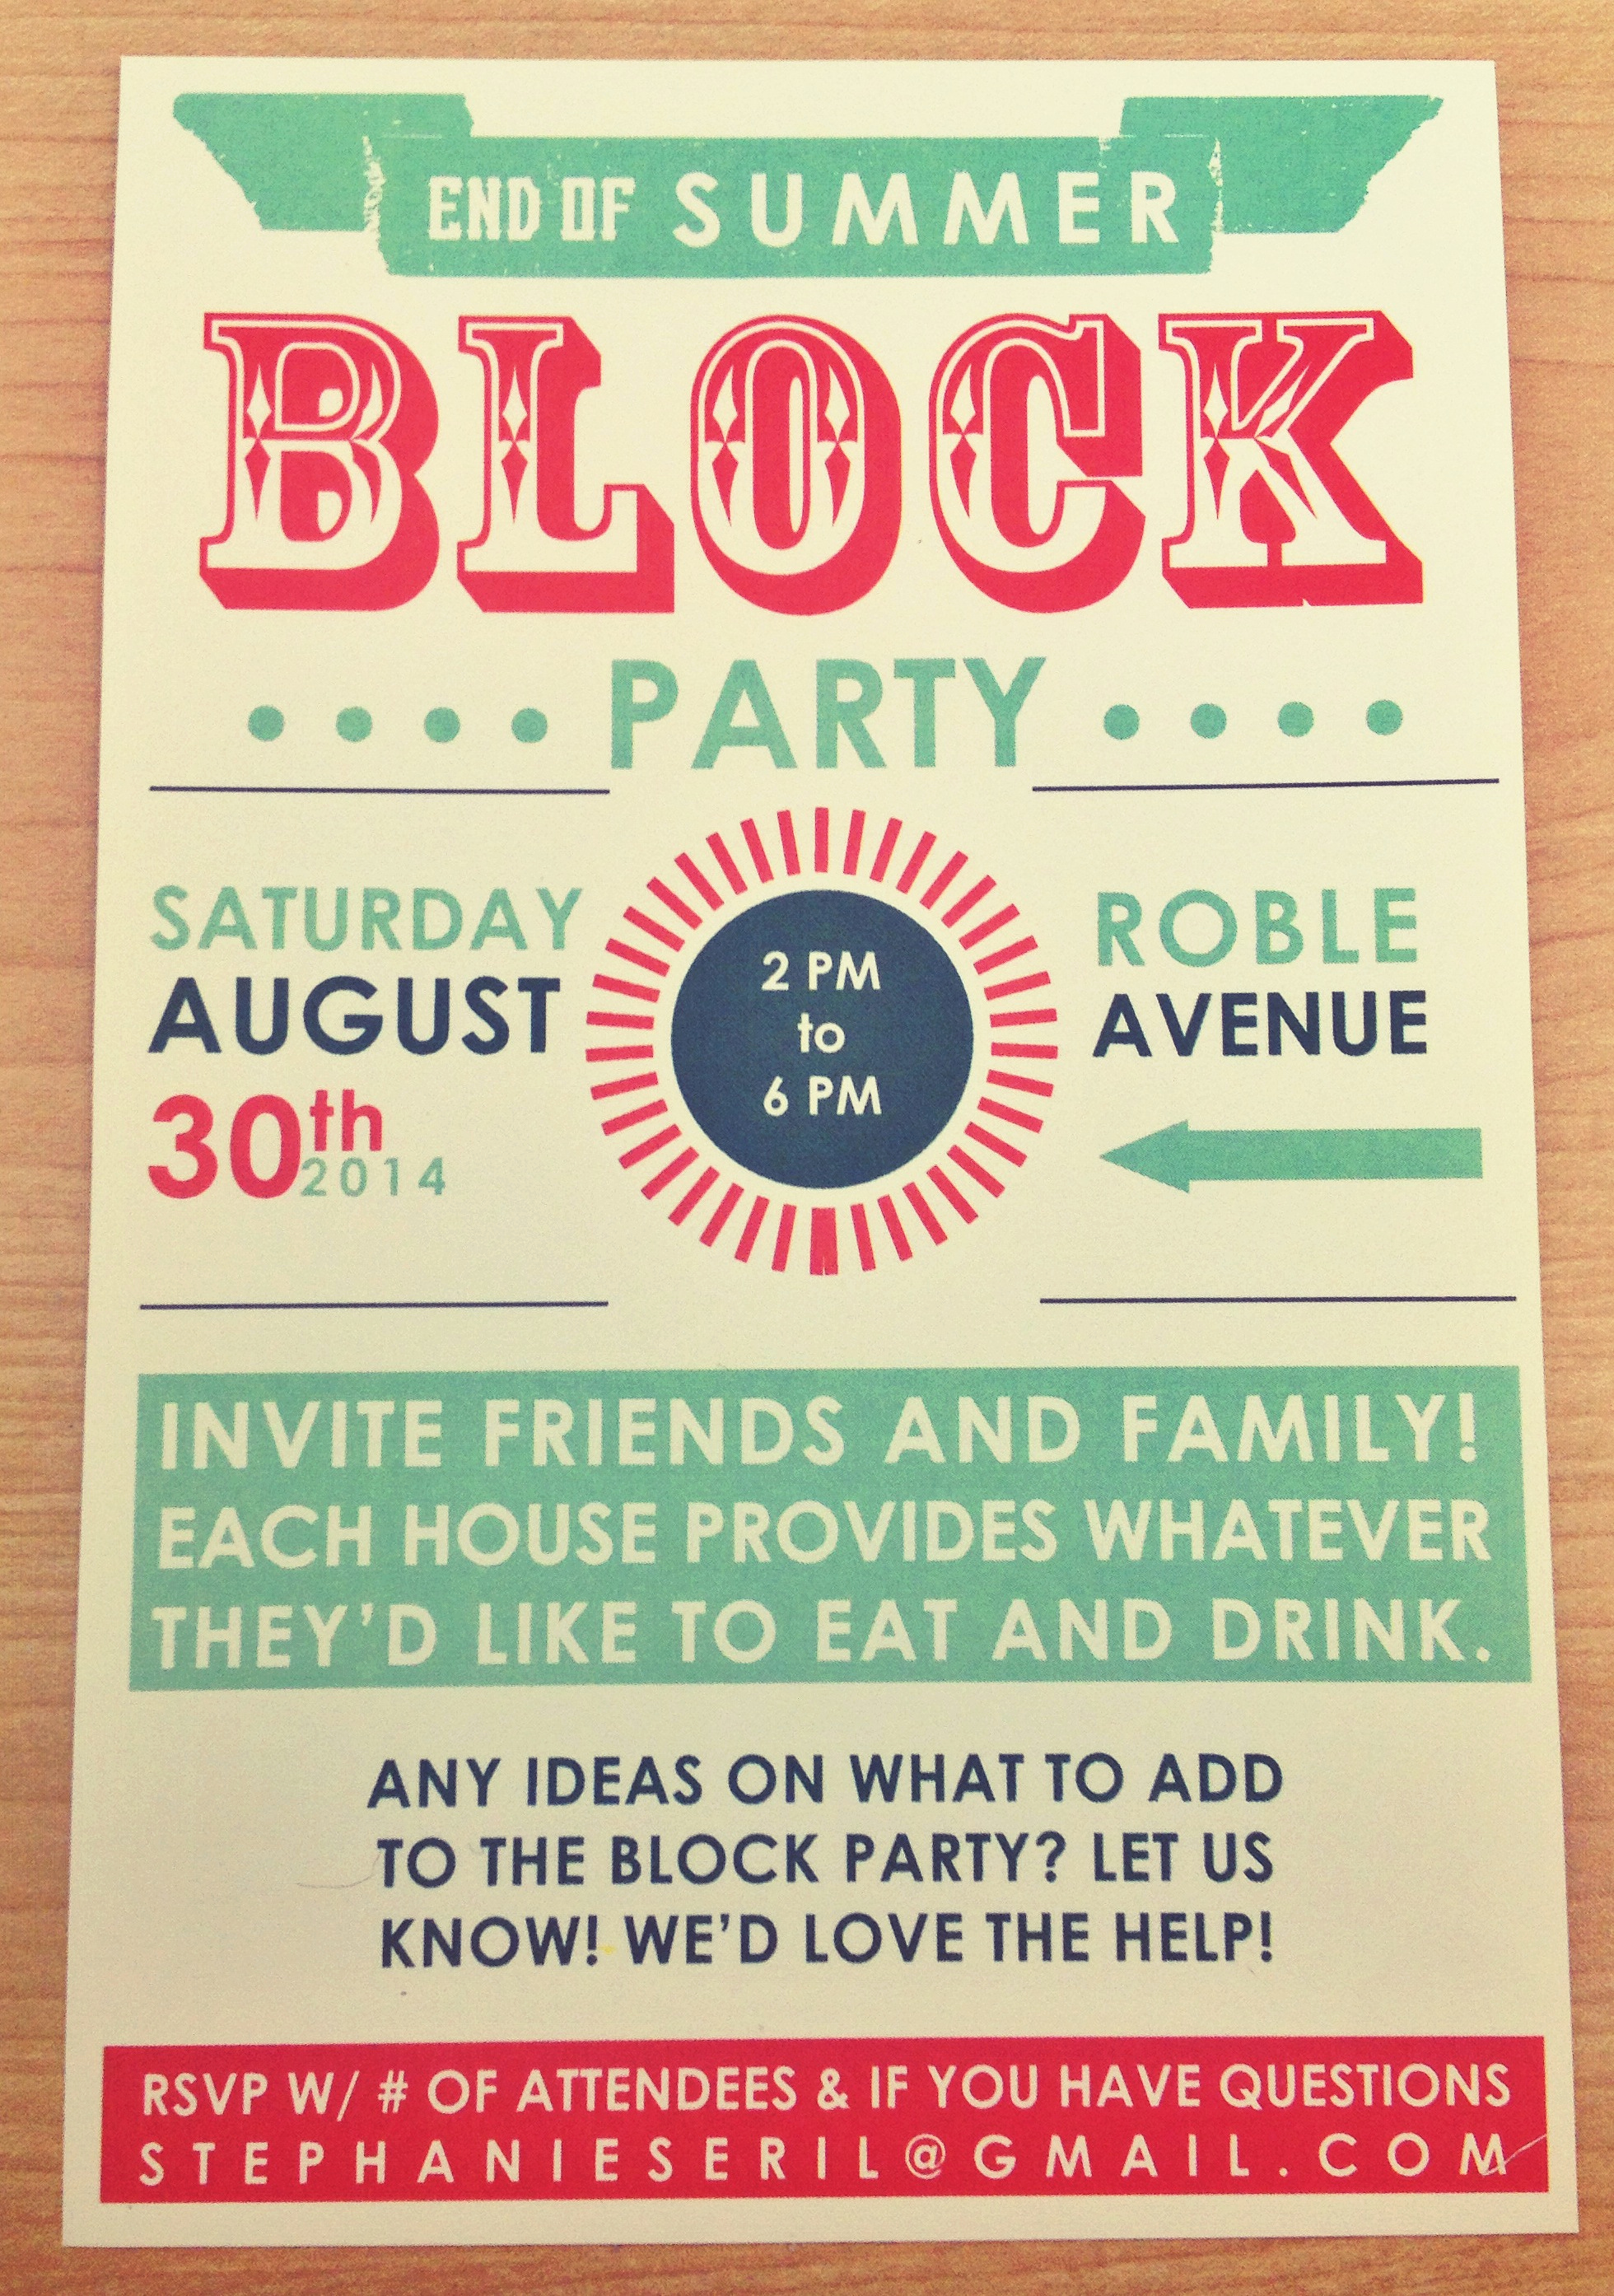 Block Party Invitation Templates Inspirational End Of Summer Block Party